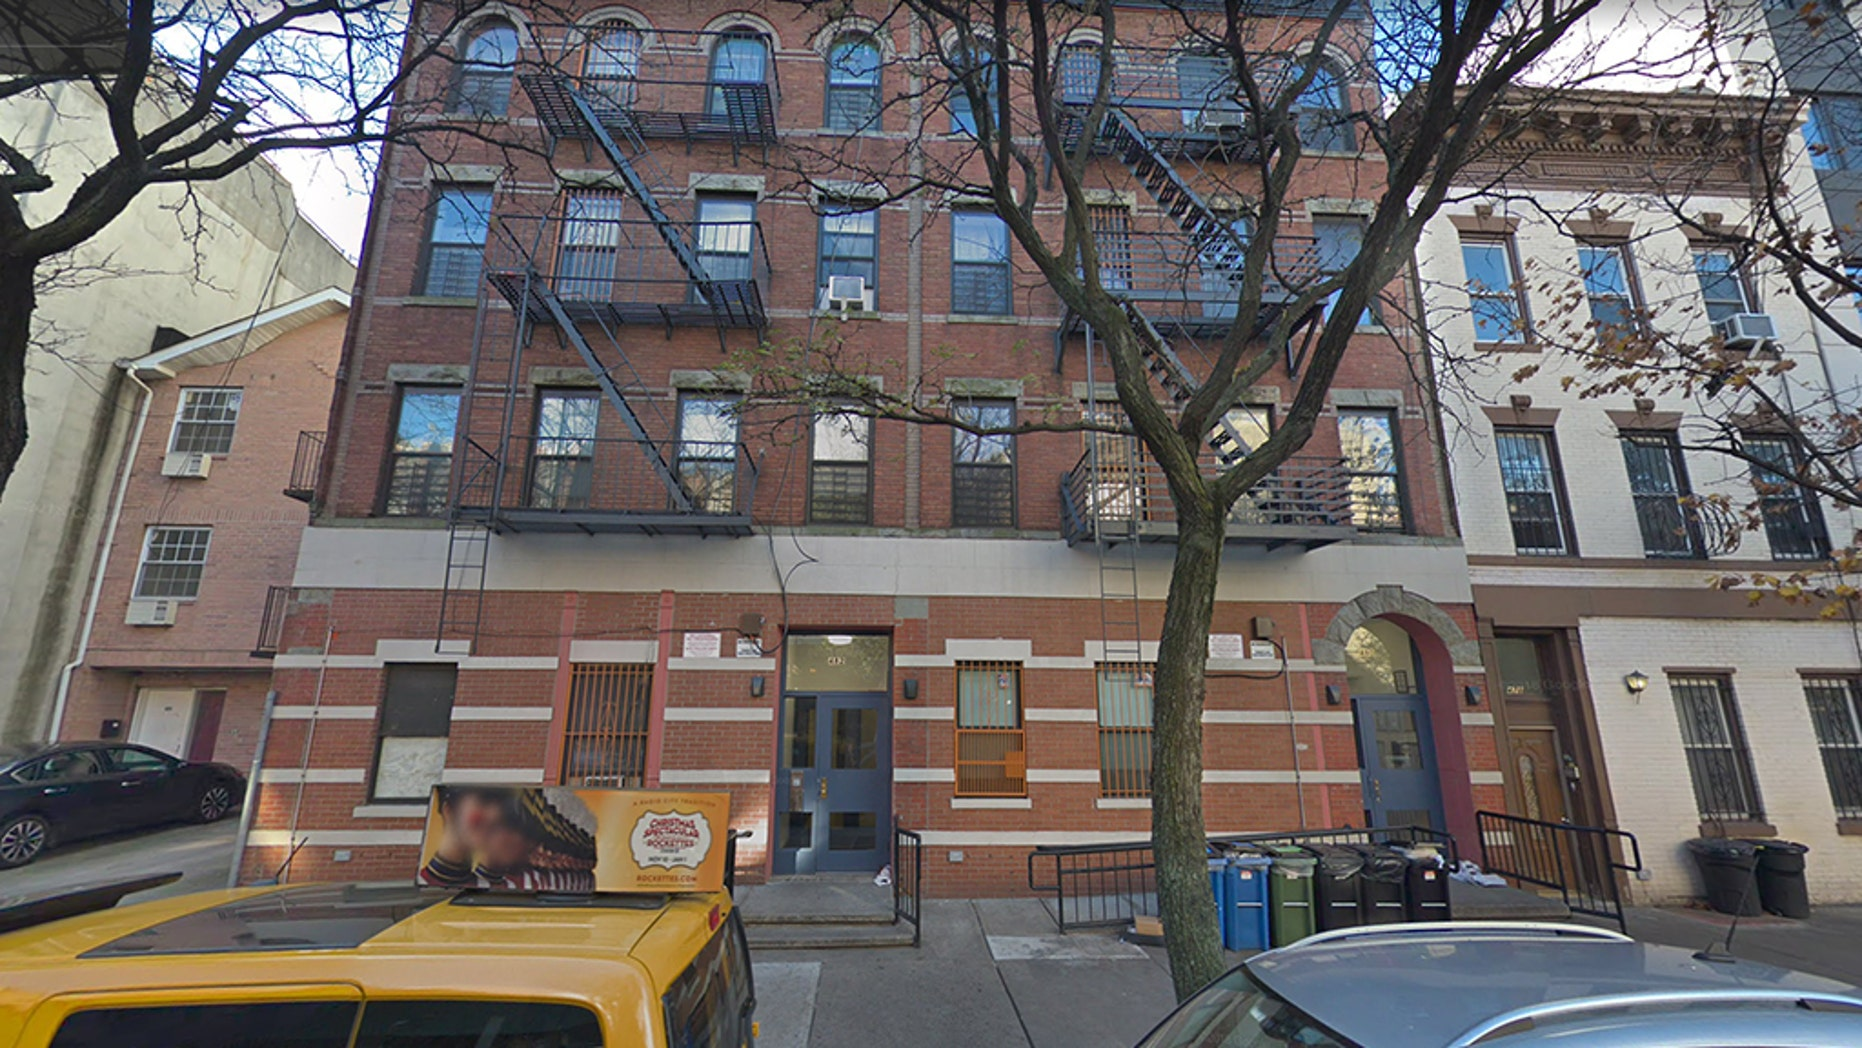 Anthony Bradford of the Bedford–Stuyvesant section of Brooklyn pleaded guilty to the manslaughter of Laverne Spencer inside her home on July 2, 2017. (Google Street View)